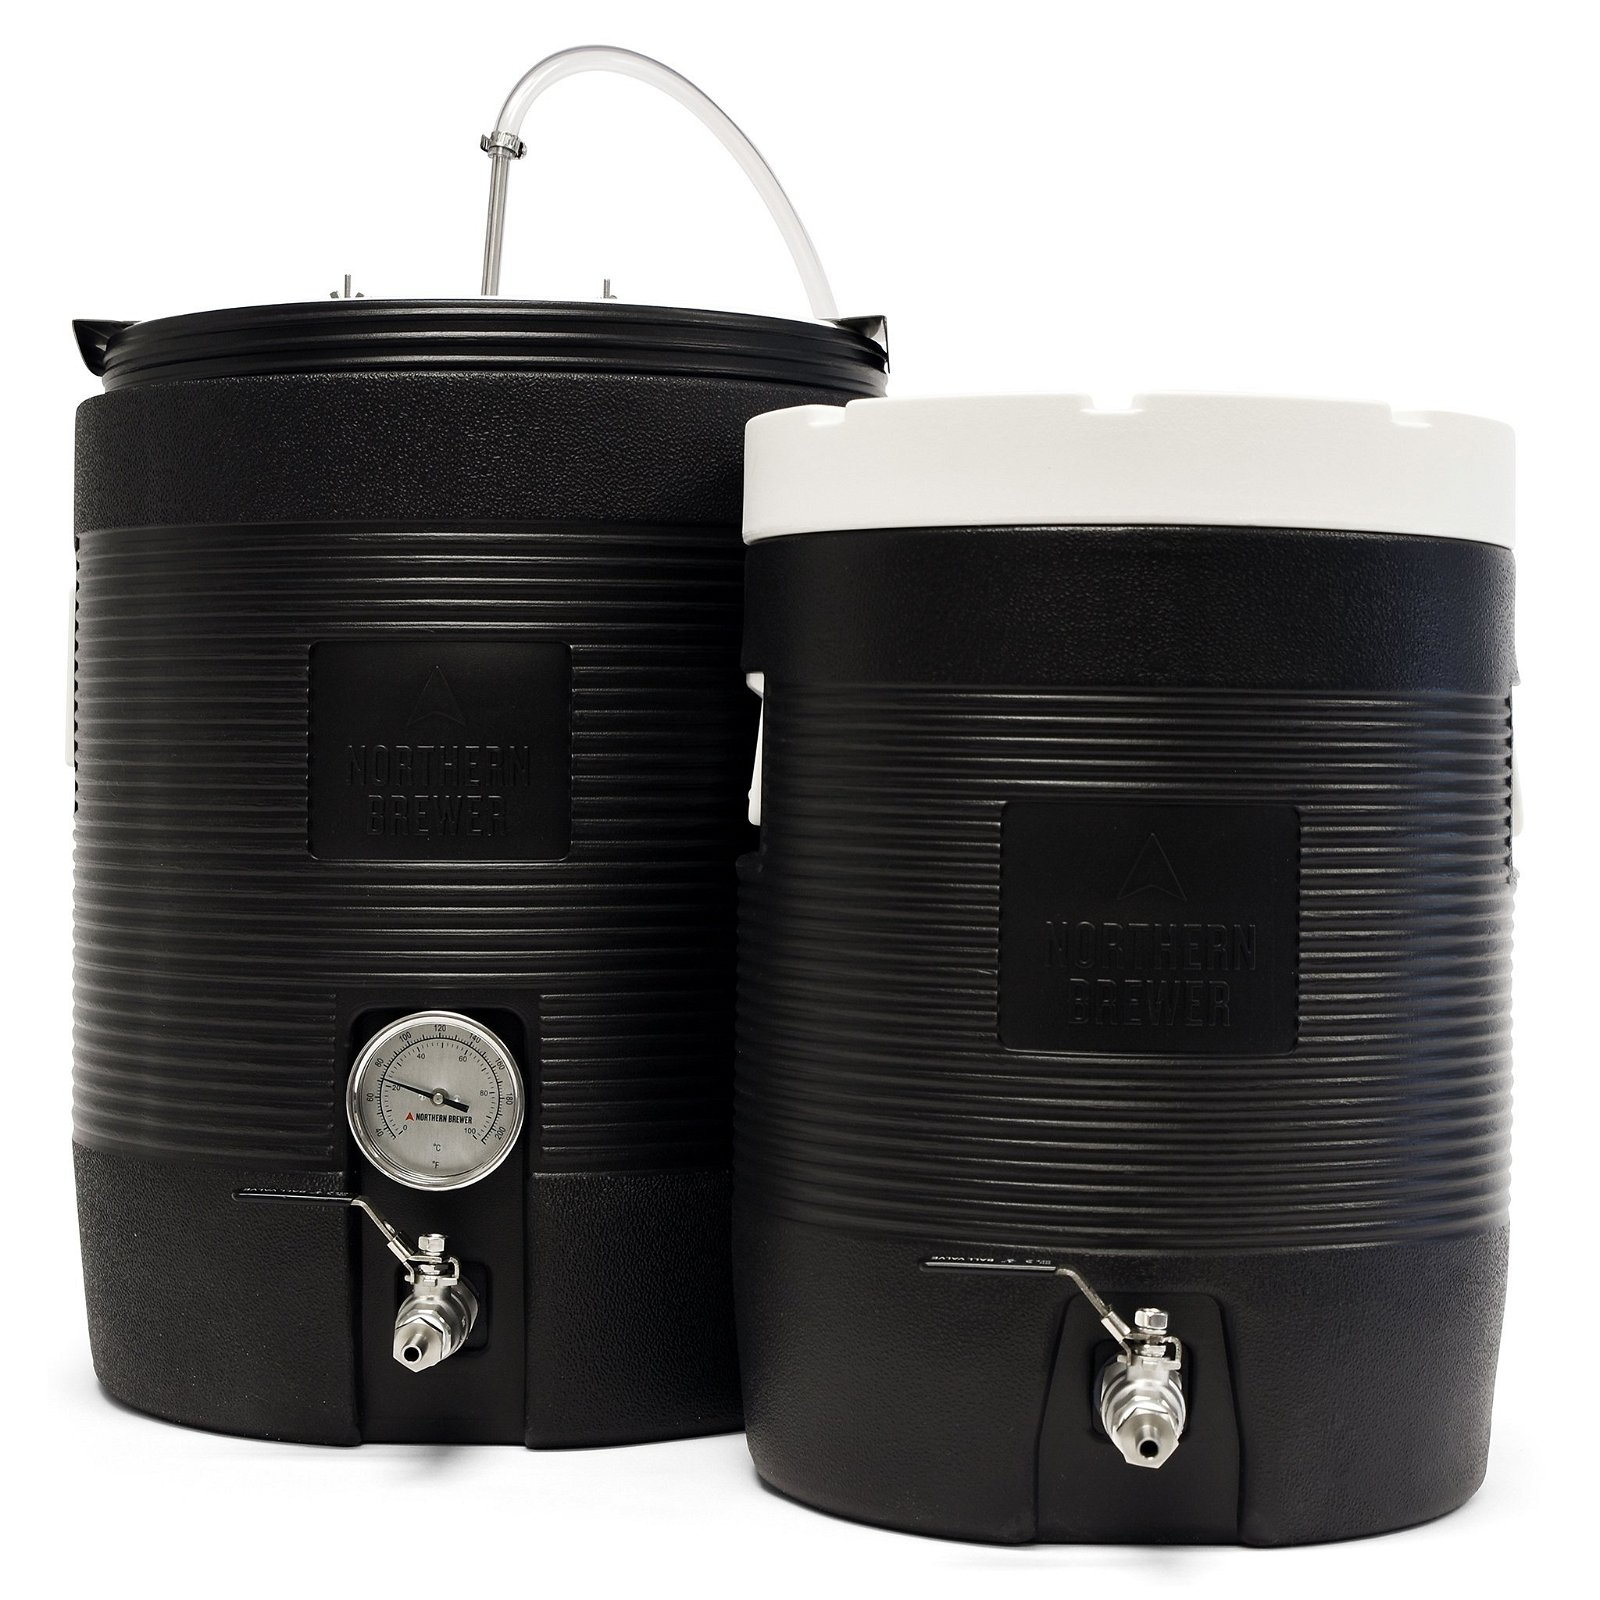 Northern Brewer All Grain Cooler System